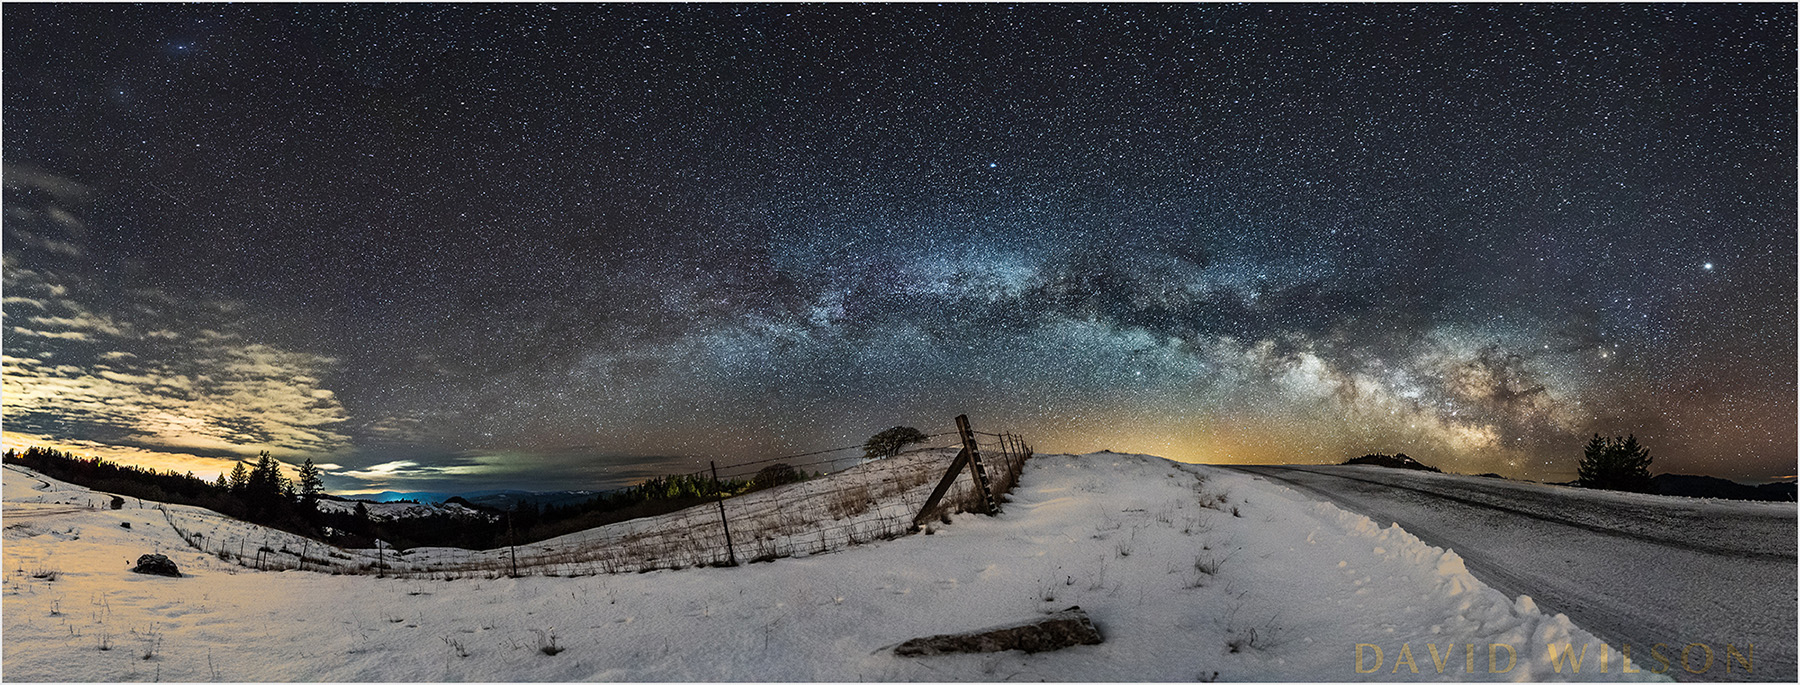 Milky Way arches over snowy Kneeland Hills